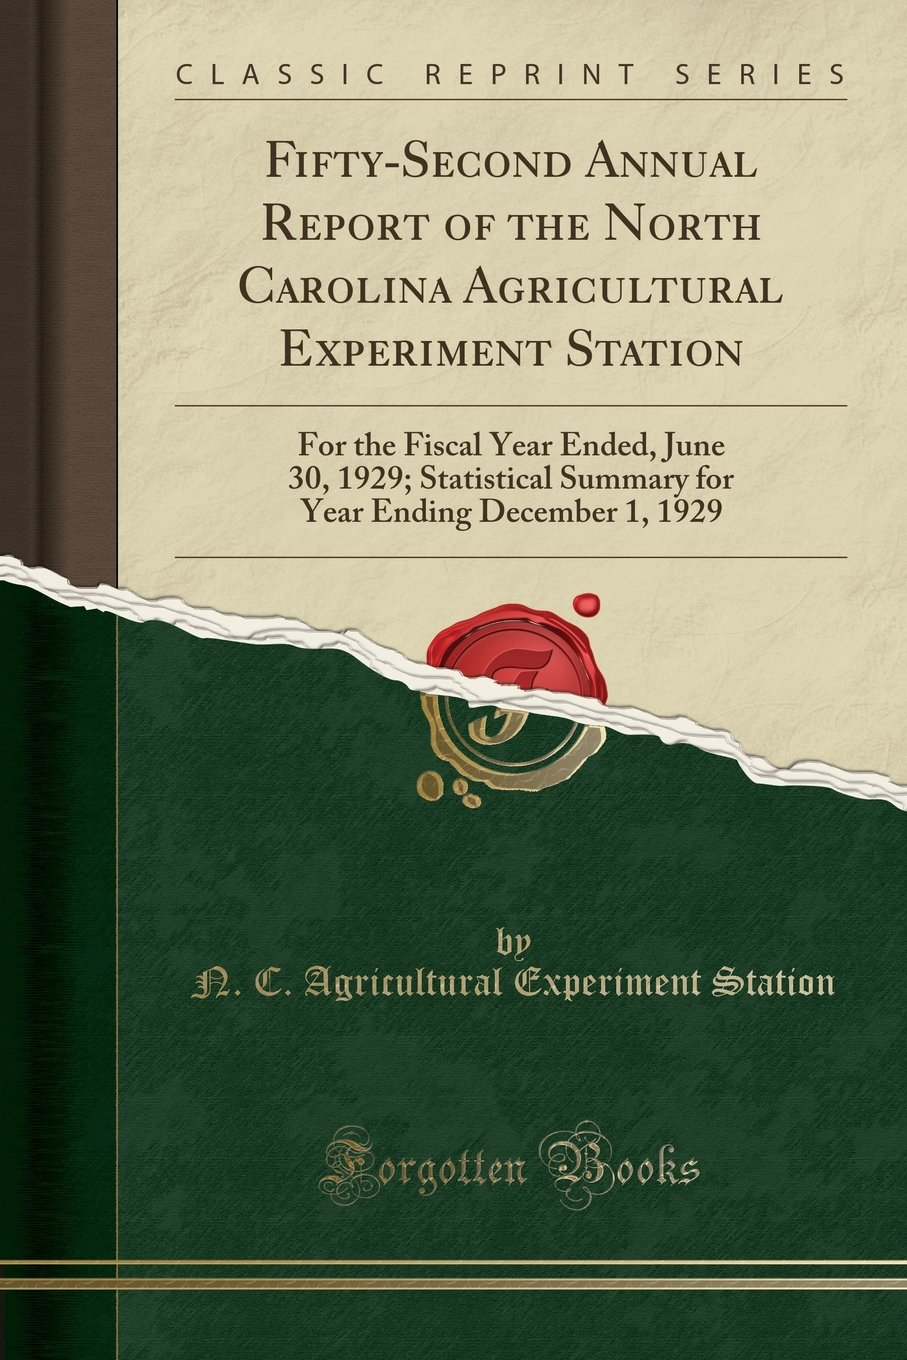 Download Fifty-Second Annual Report of the North Carolina Agricultural Experiment Station: For the Fiscal Year Ended, June 30, 1929; Statistical Summary for Year Ending December 1, 1929 (Classic Reprint) ebook